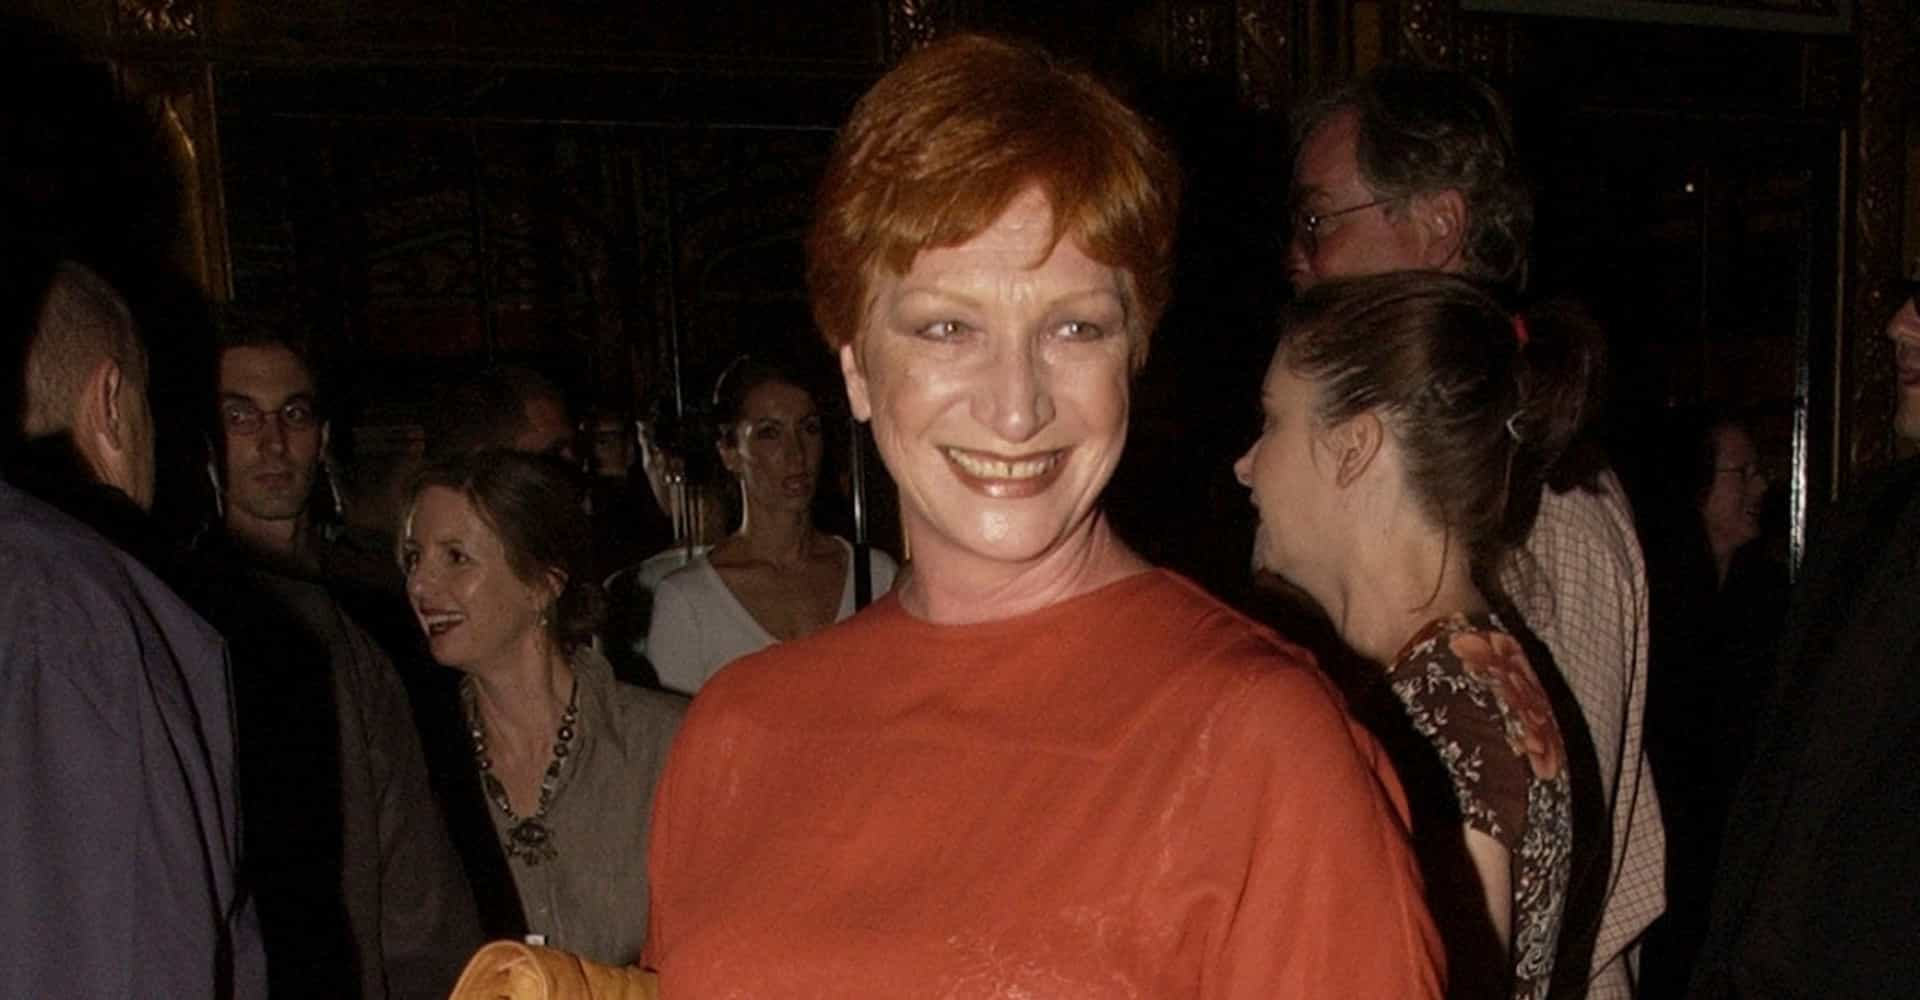 A tribute to Australian TV's beloved Cornelia Frances